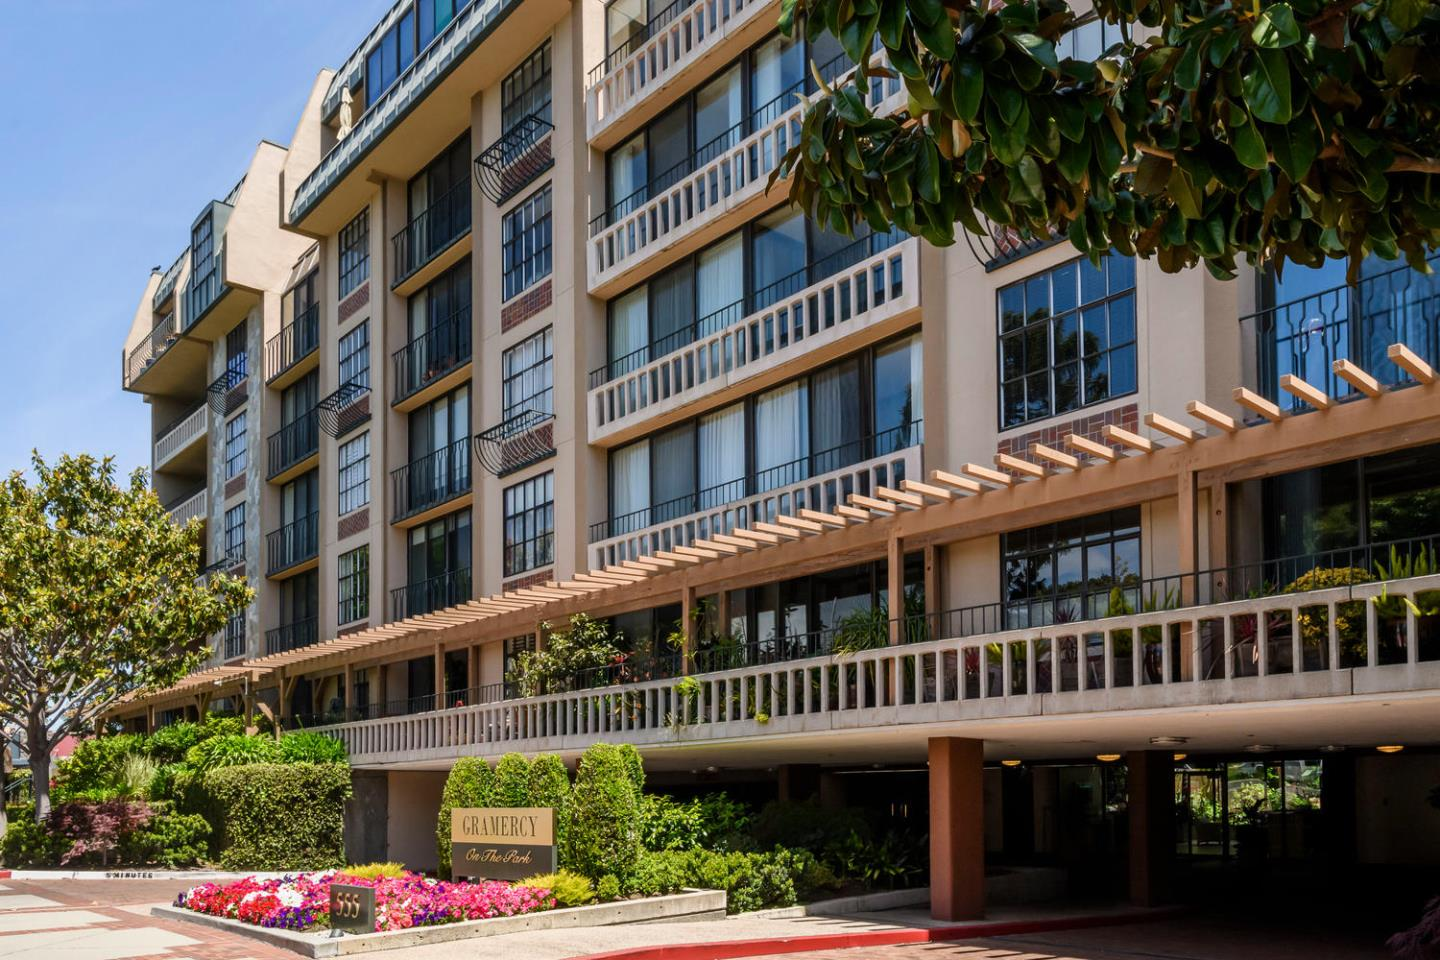 Unique and rarely available 3BR/3BA Penthouse home in coveted Gramercy on the Park. Formal entry opens to both Dining Room and office/3rd BR suite. Large kitchen, featuring skylights, granite countertop, tile floor & stainless steel appliances is adjacent to generously sized Living Room, which features built-in cabinetry, and opens through sliding glass doors to expansive patio with 180-degree views of the hills and the bay. Large master suite features walk-in closet, additional closet, and spa-like master bath adorned with stone tile, and featuring dual vanity, soaking tub, stall shower and abundance of storage. Additional large guest bedroom suite. Gramercy on the park offers unparalleled amenities including door attendant, indoor pool, and fitness facility. This unit comes with 2 parking spaces.